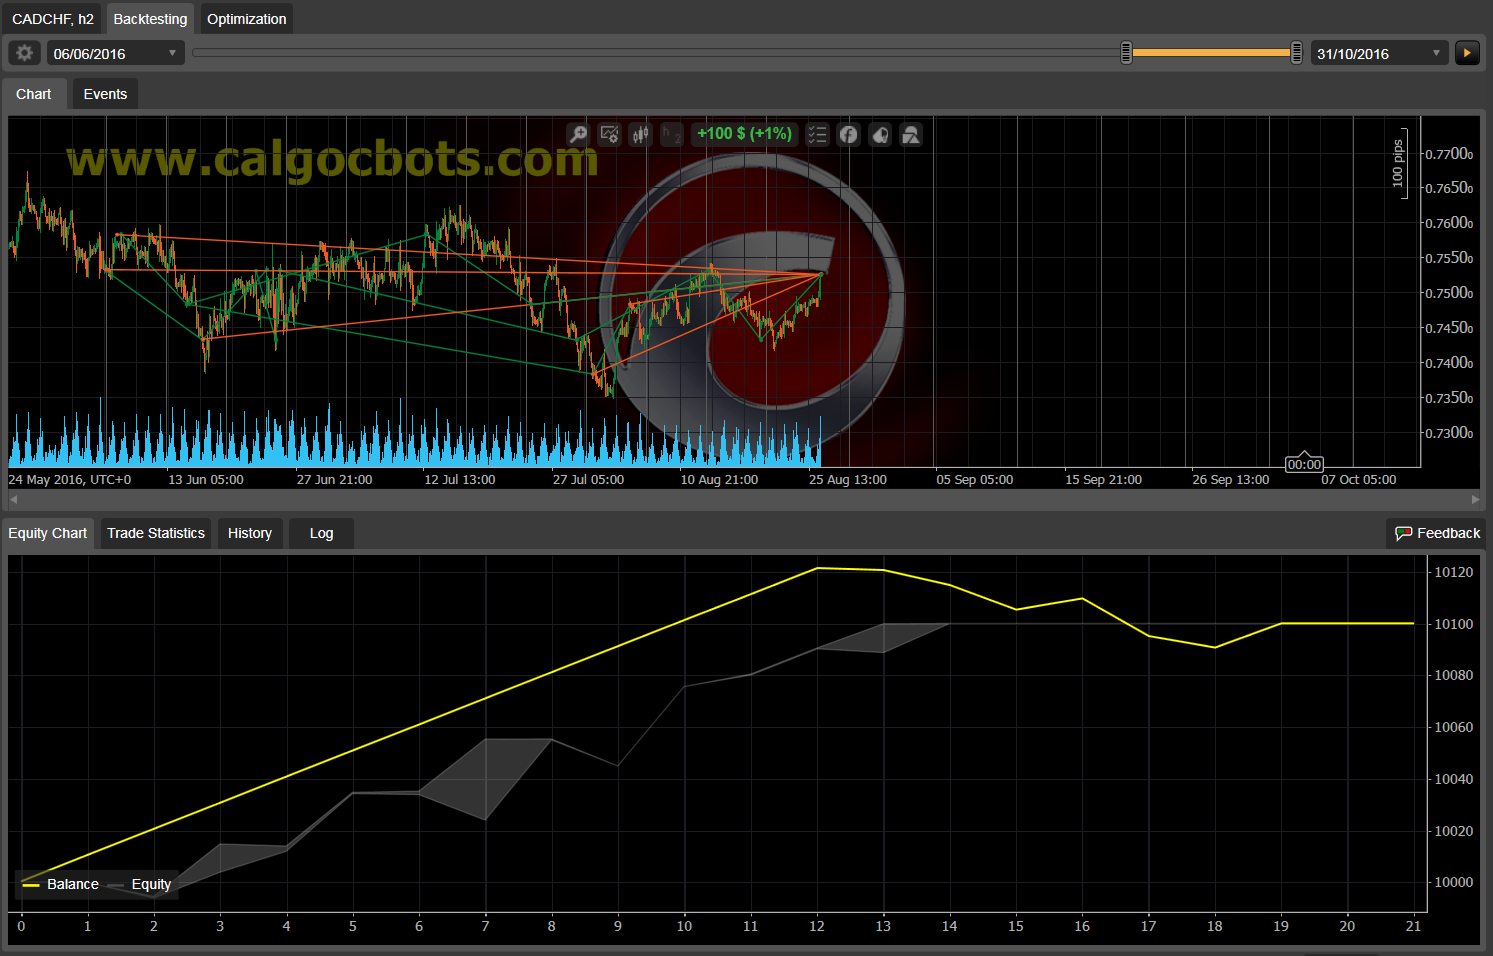 Dual Grid Hedge CAD CHF 1h cAlgo cBots cTrader 1k 100 50 100 - 11